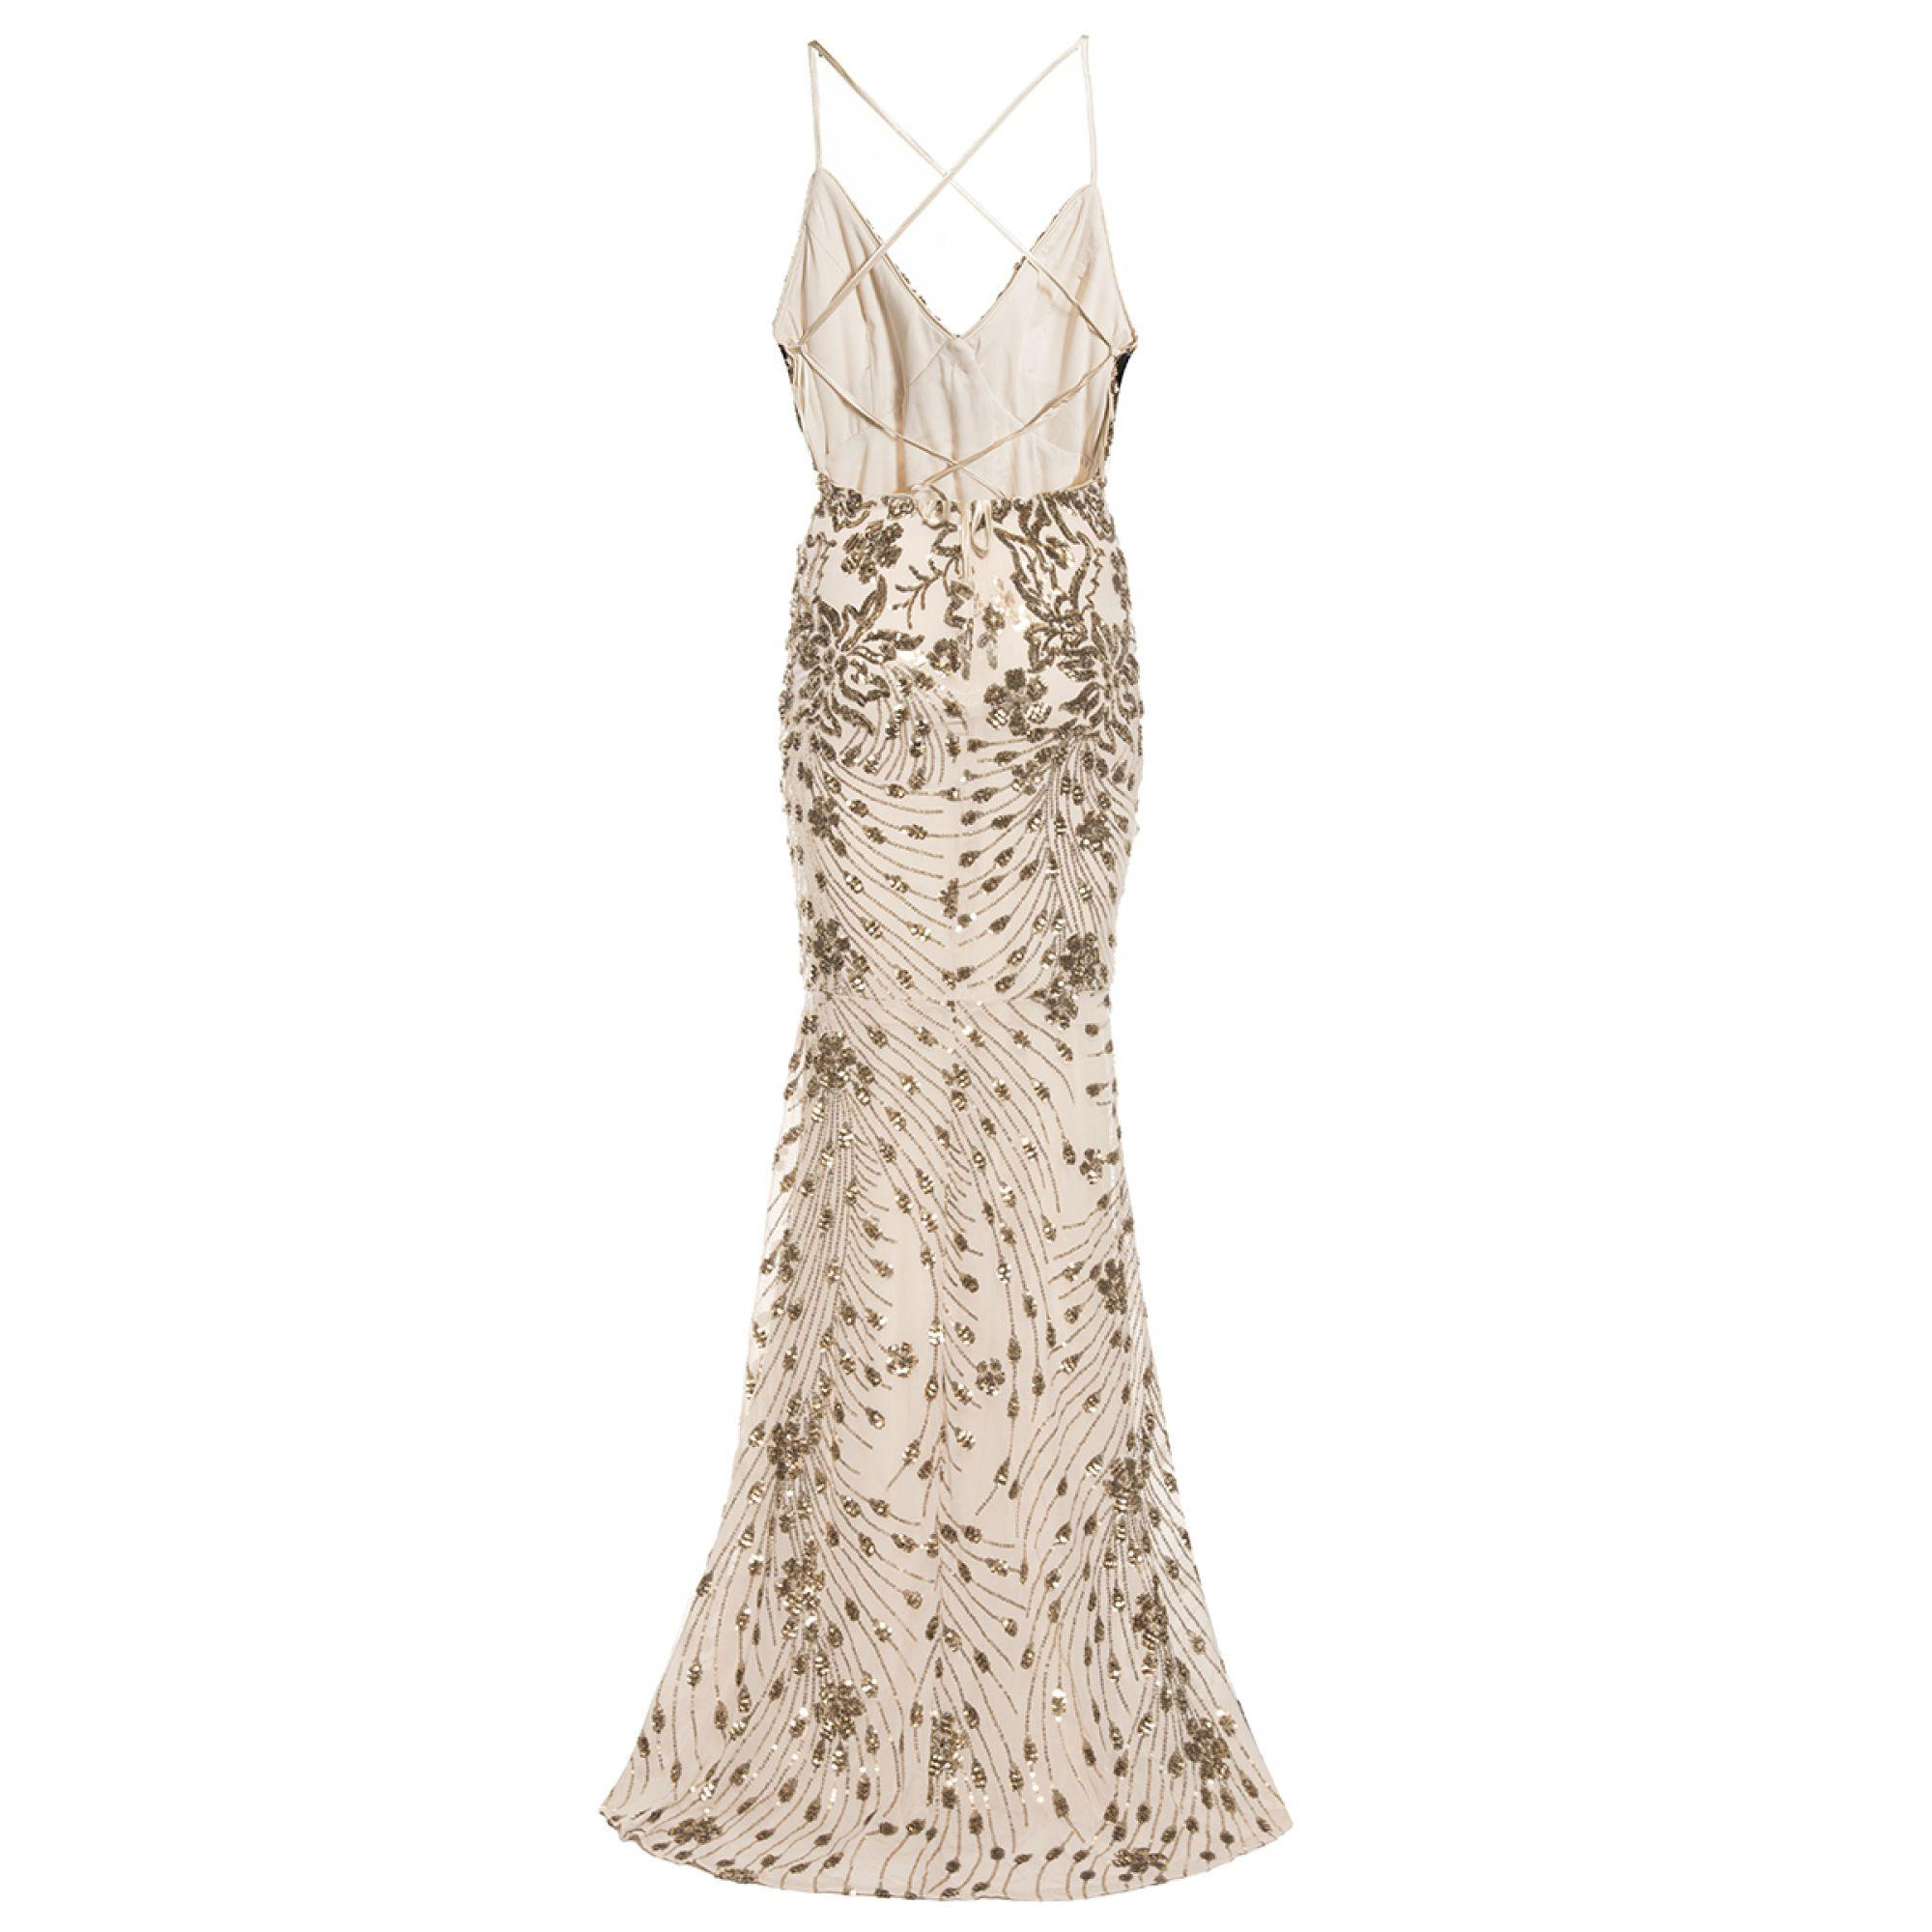 2bc90e7c299 Quiz - Metallic Champagne Sequin Cross Back Fishtail Maxi Dress - Lyst.  View fullscreen